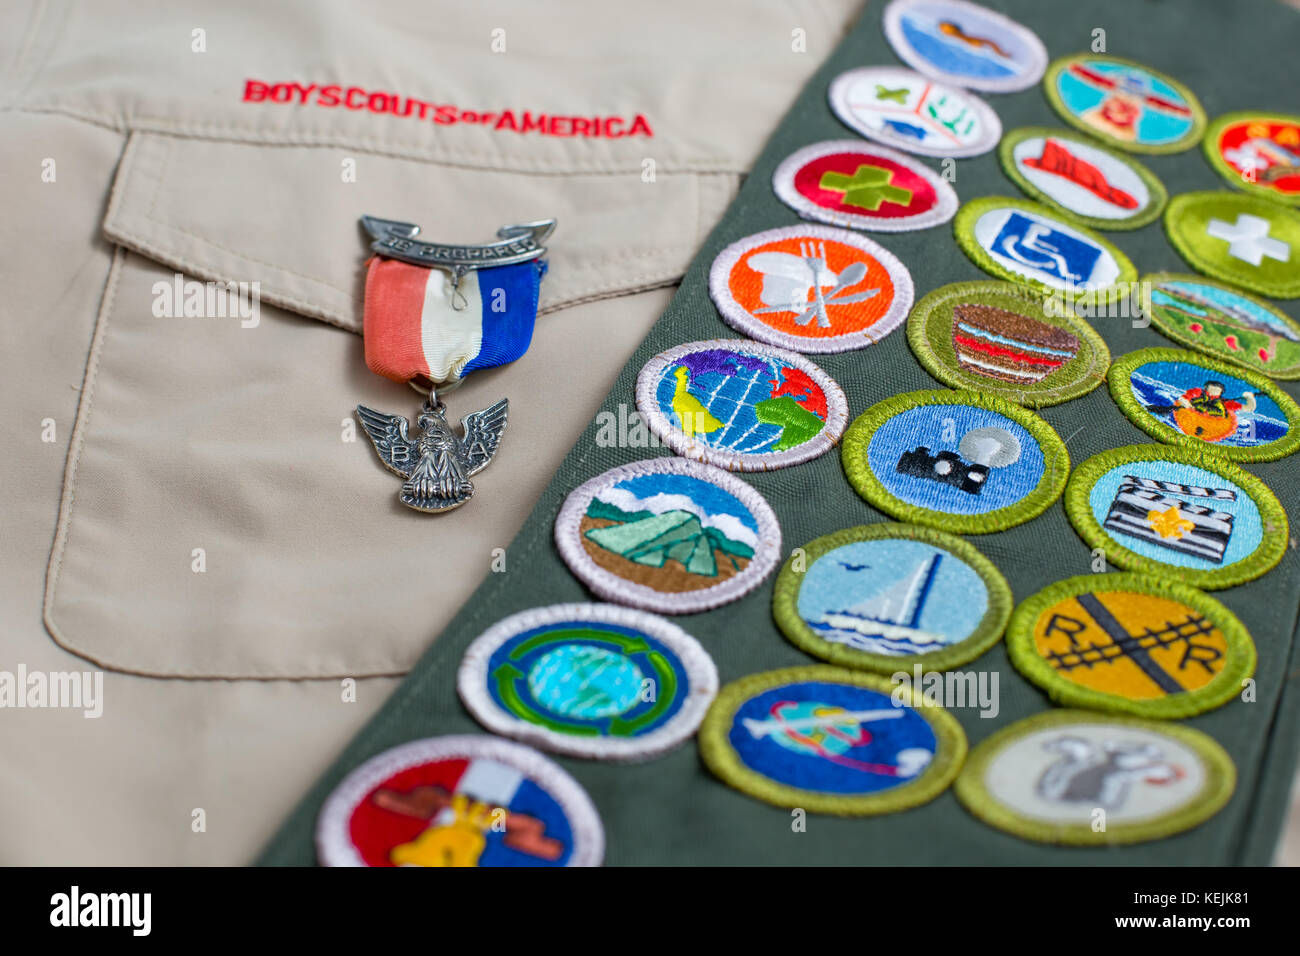 SAINT LOUIS, UNITED STATES - OCTOBER 16, 2017:  Eagle pin and merit badge sash on Boy Scouts of America (BSA) uniform - Stock Image